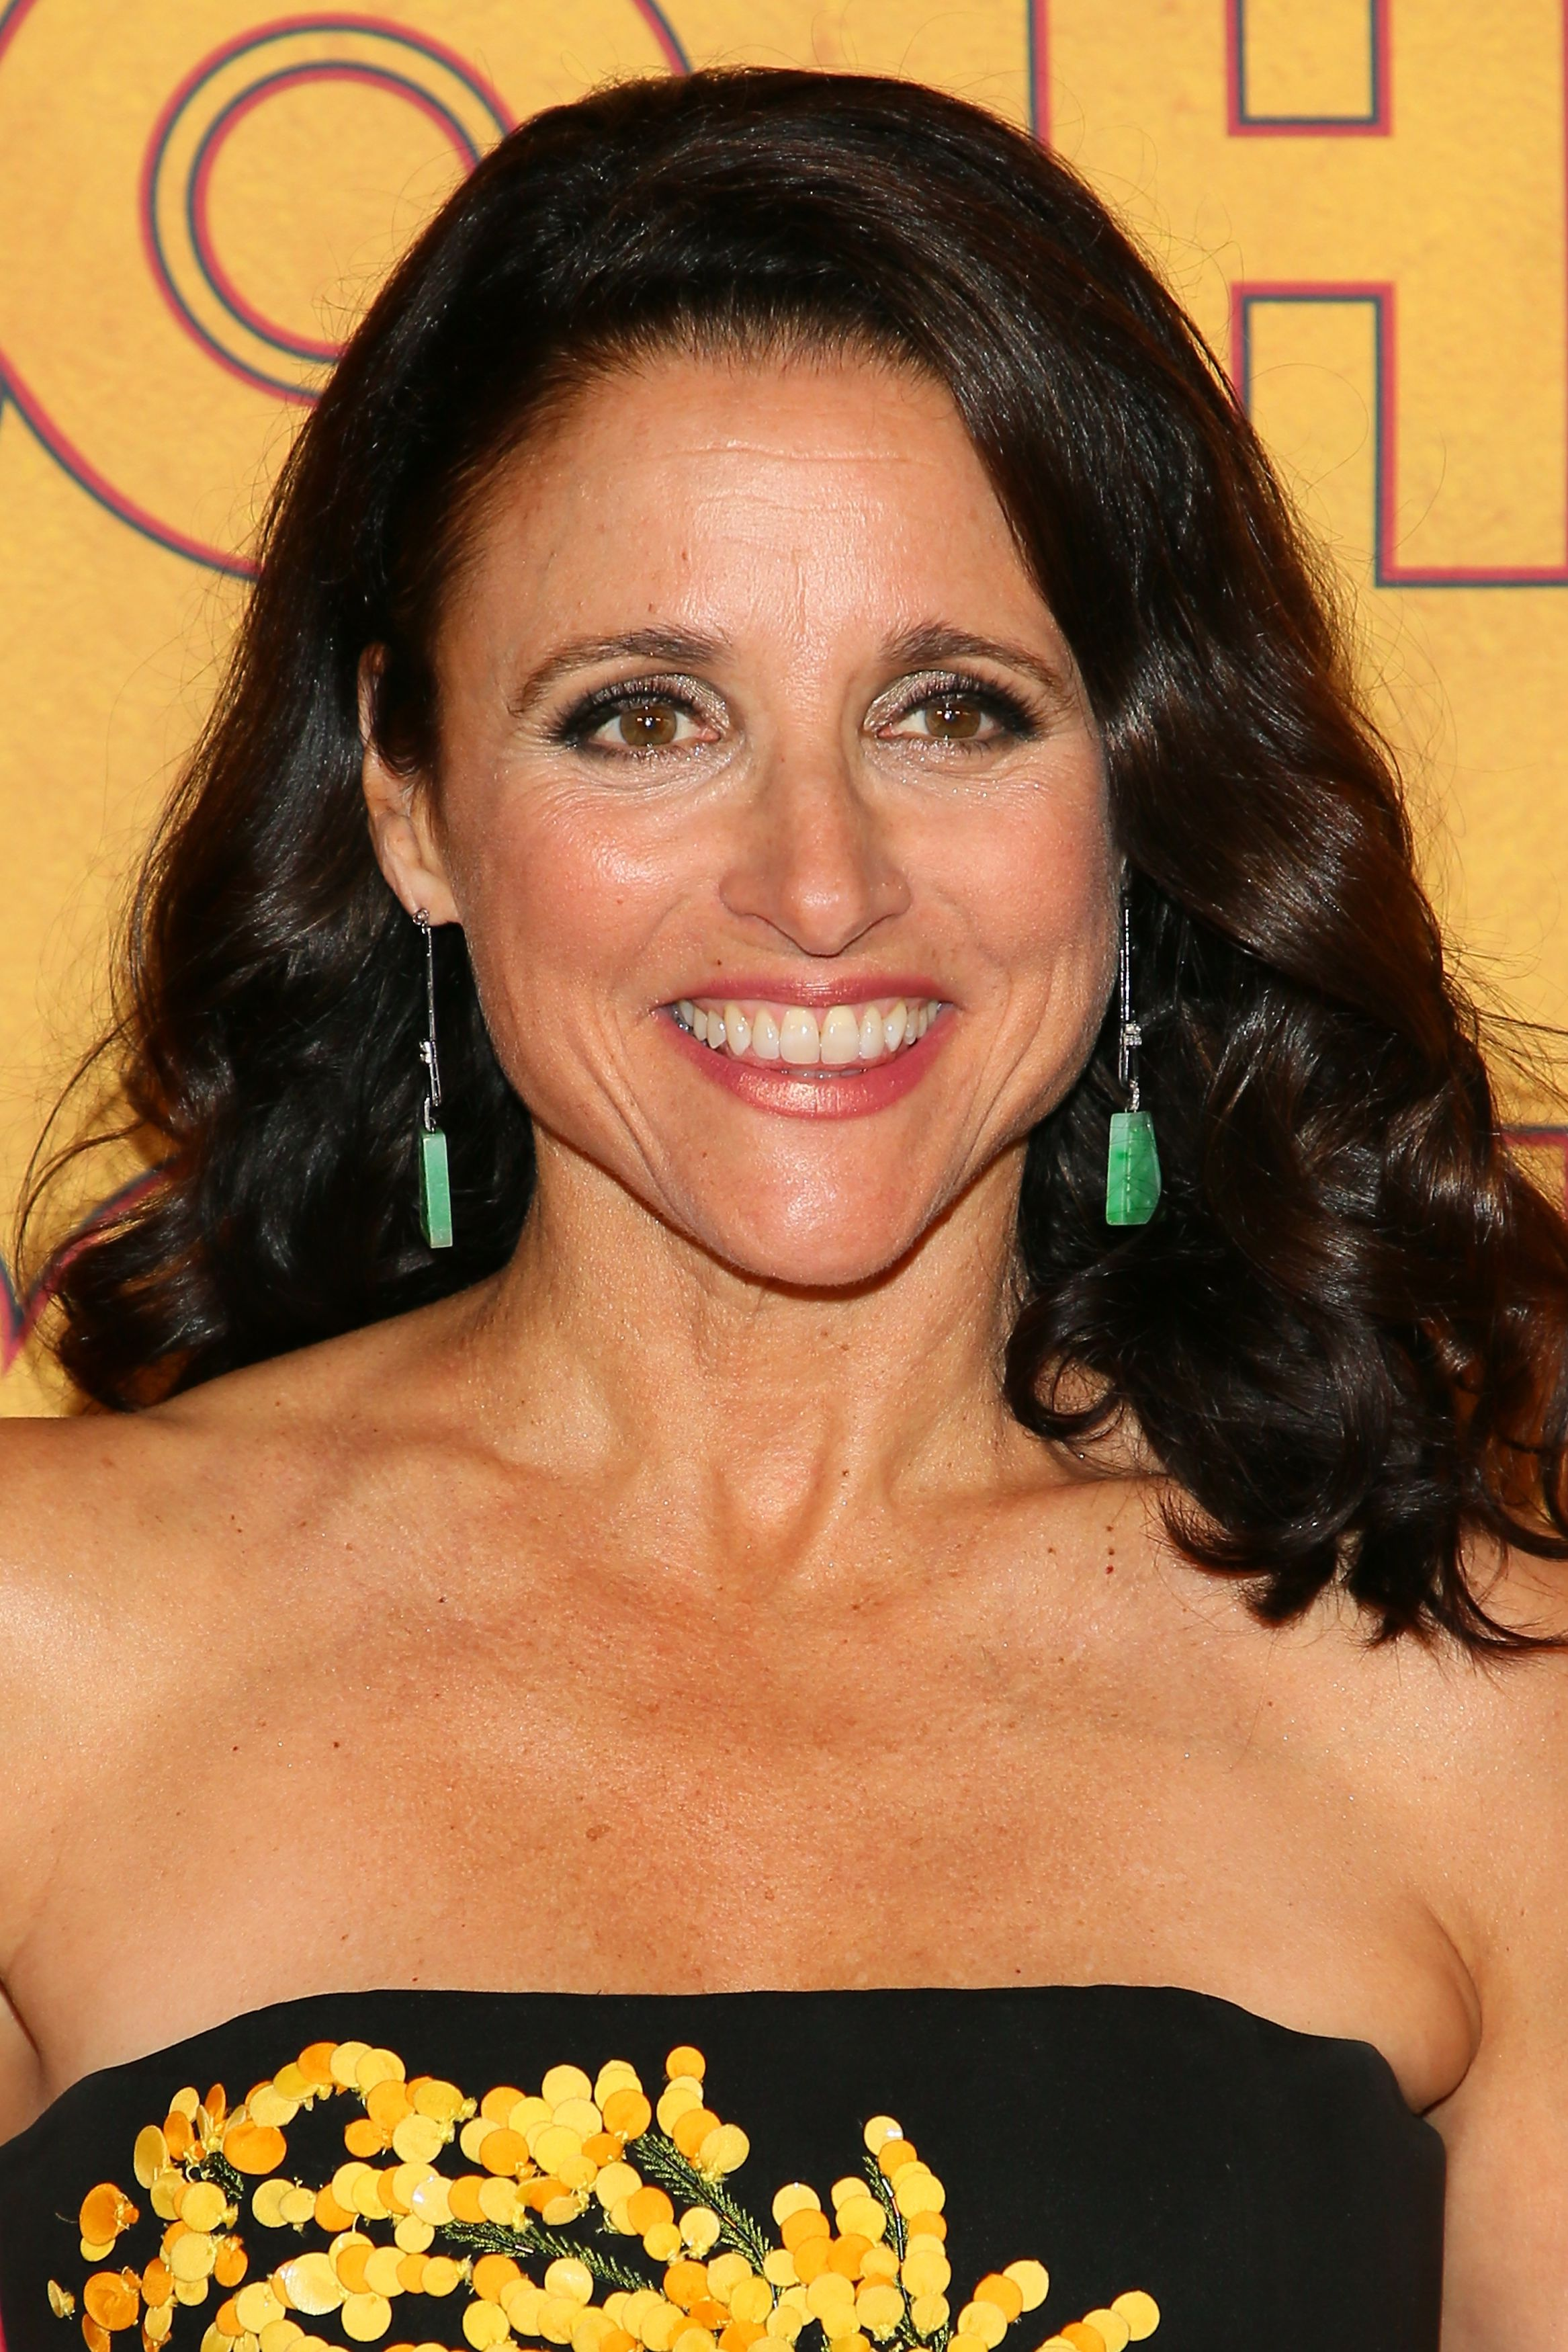 Gorgeous Hairstyles for Women Over 50 - julia louis dreyfus